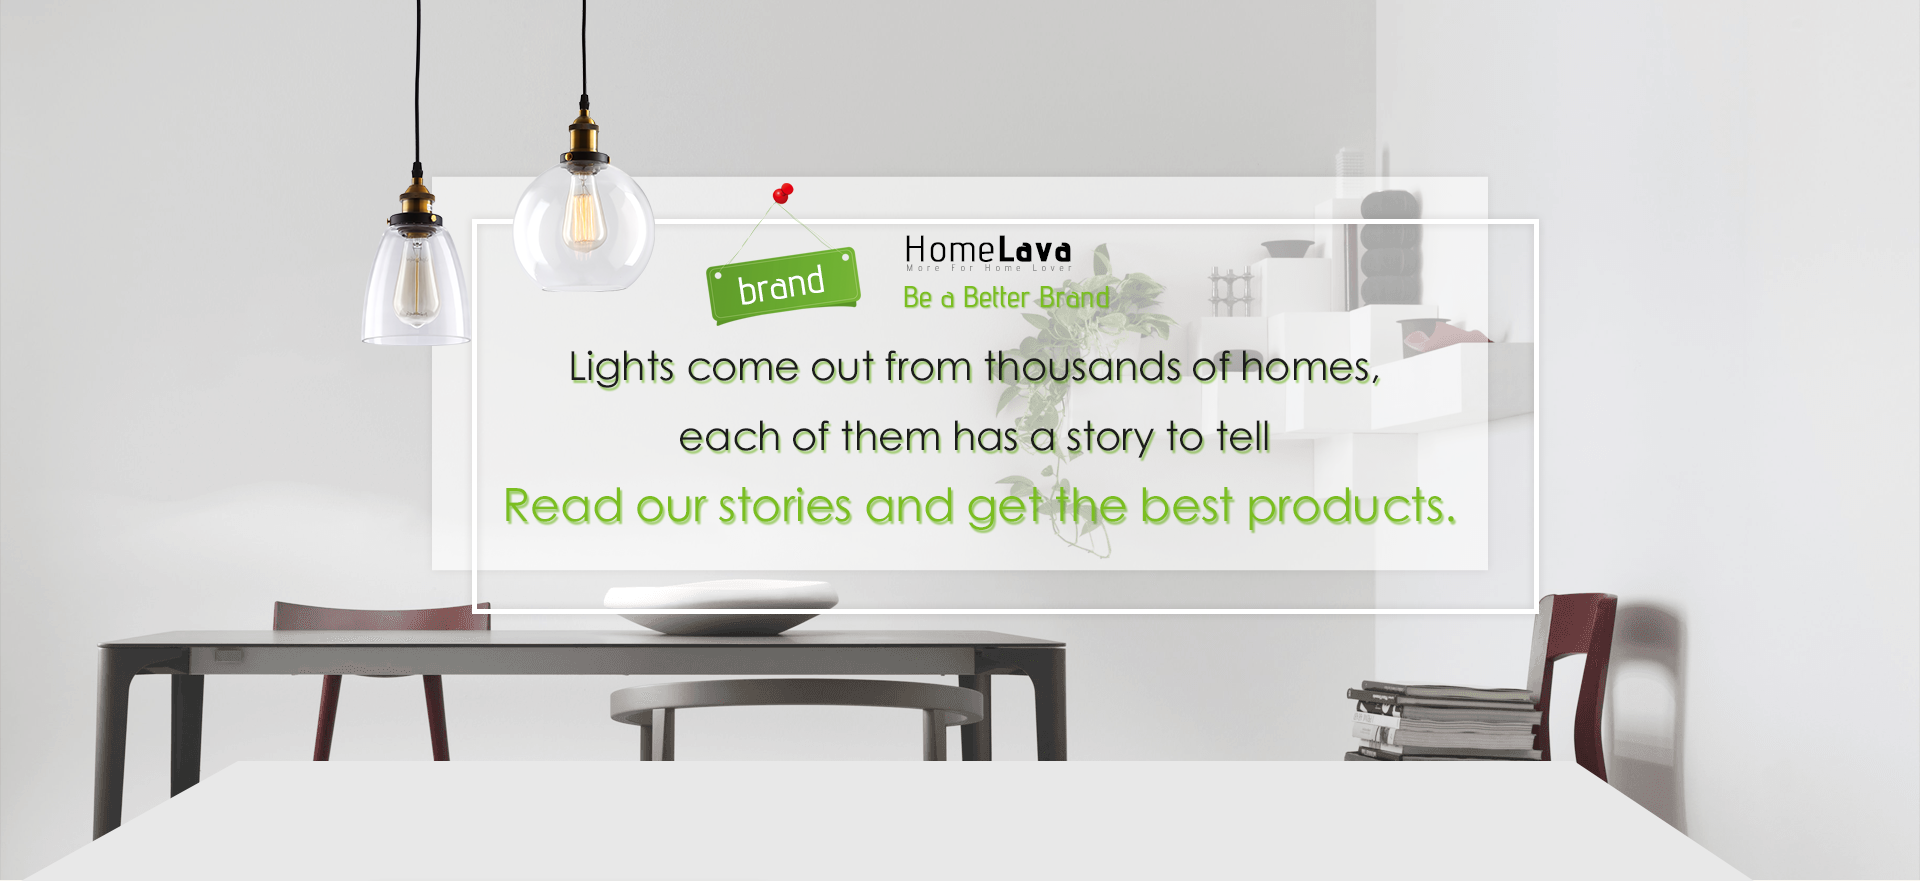 Lights come out from thousands of homes, each of them has a story to tell